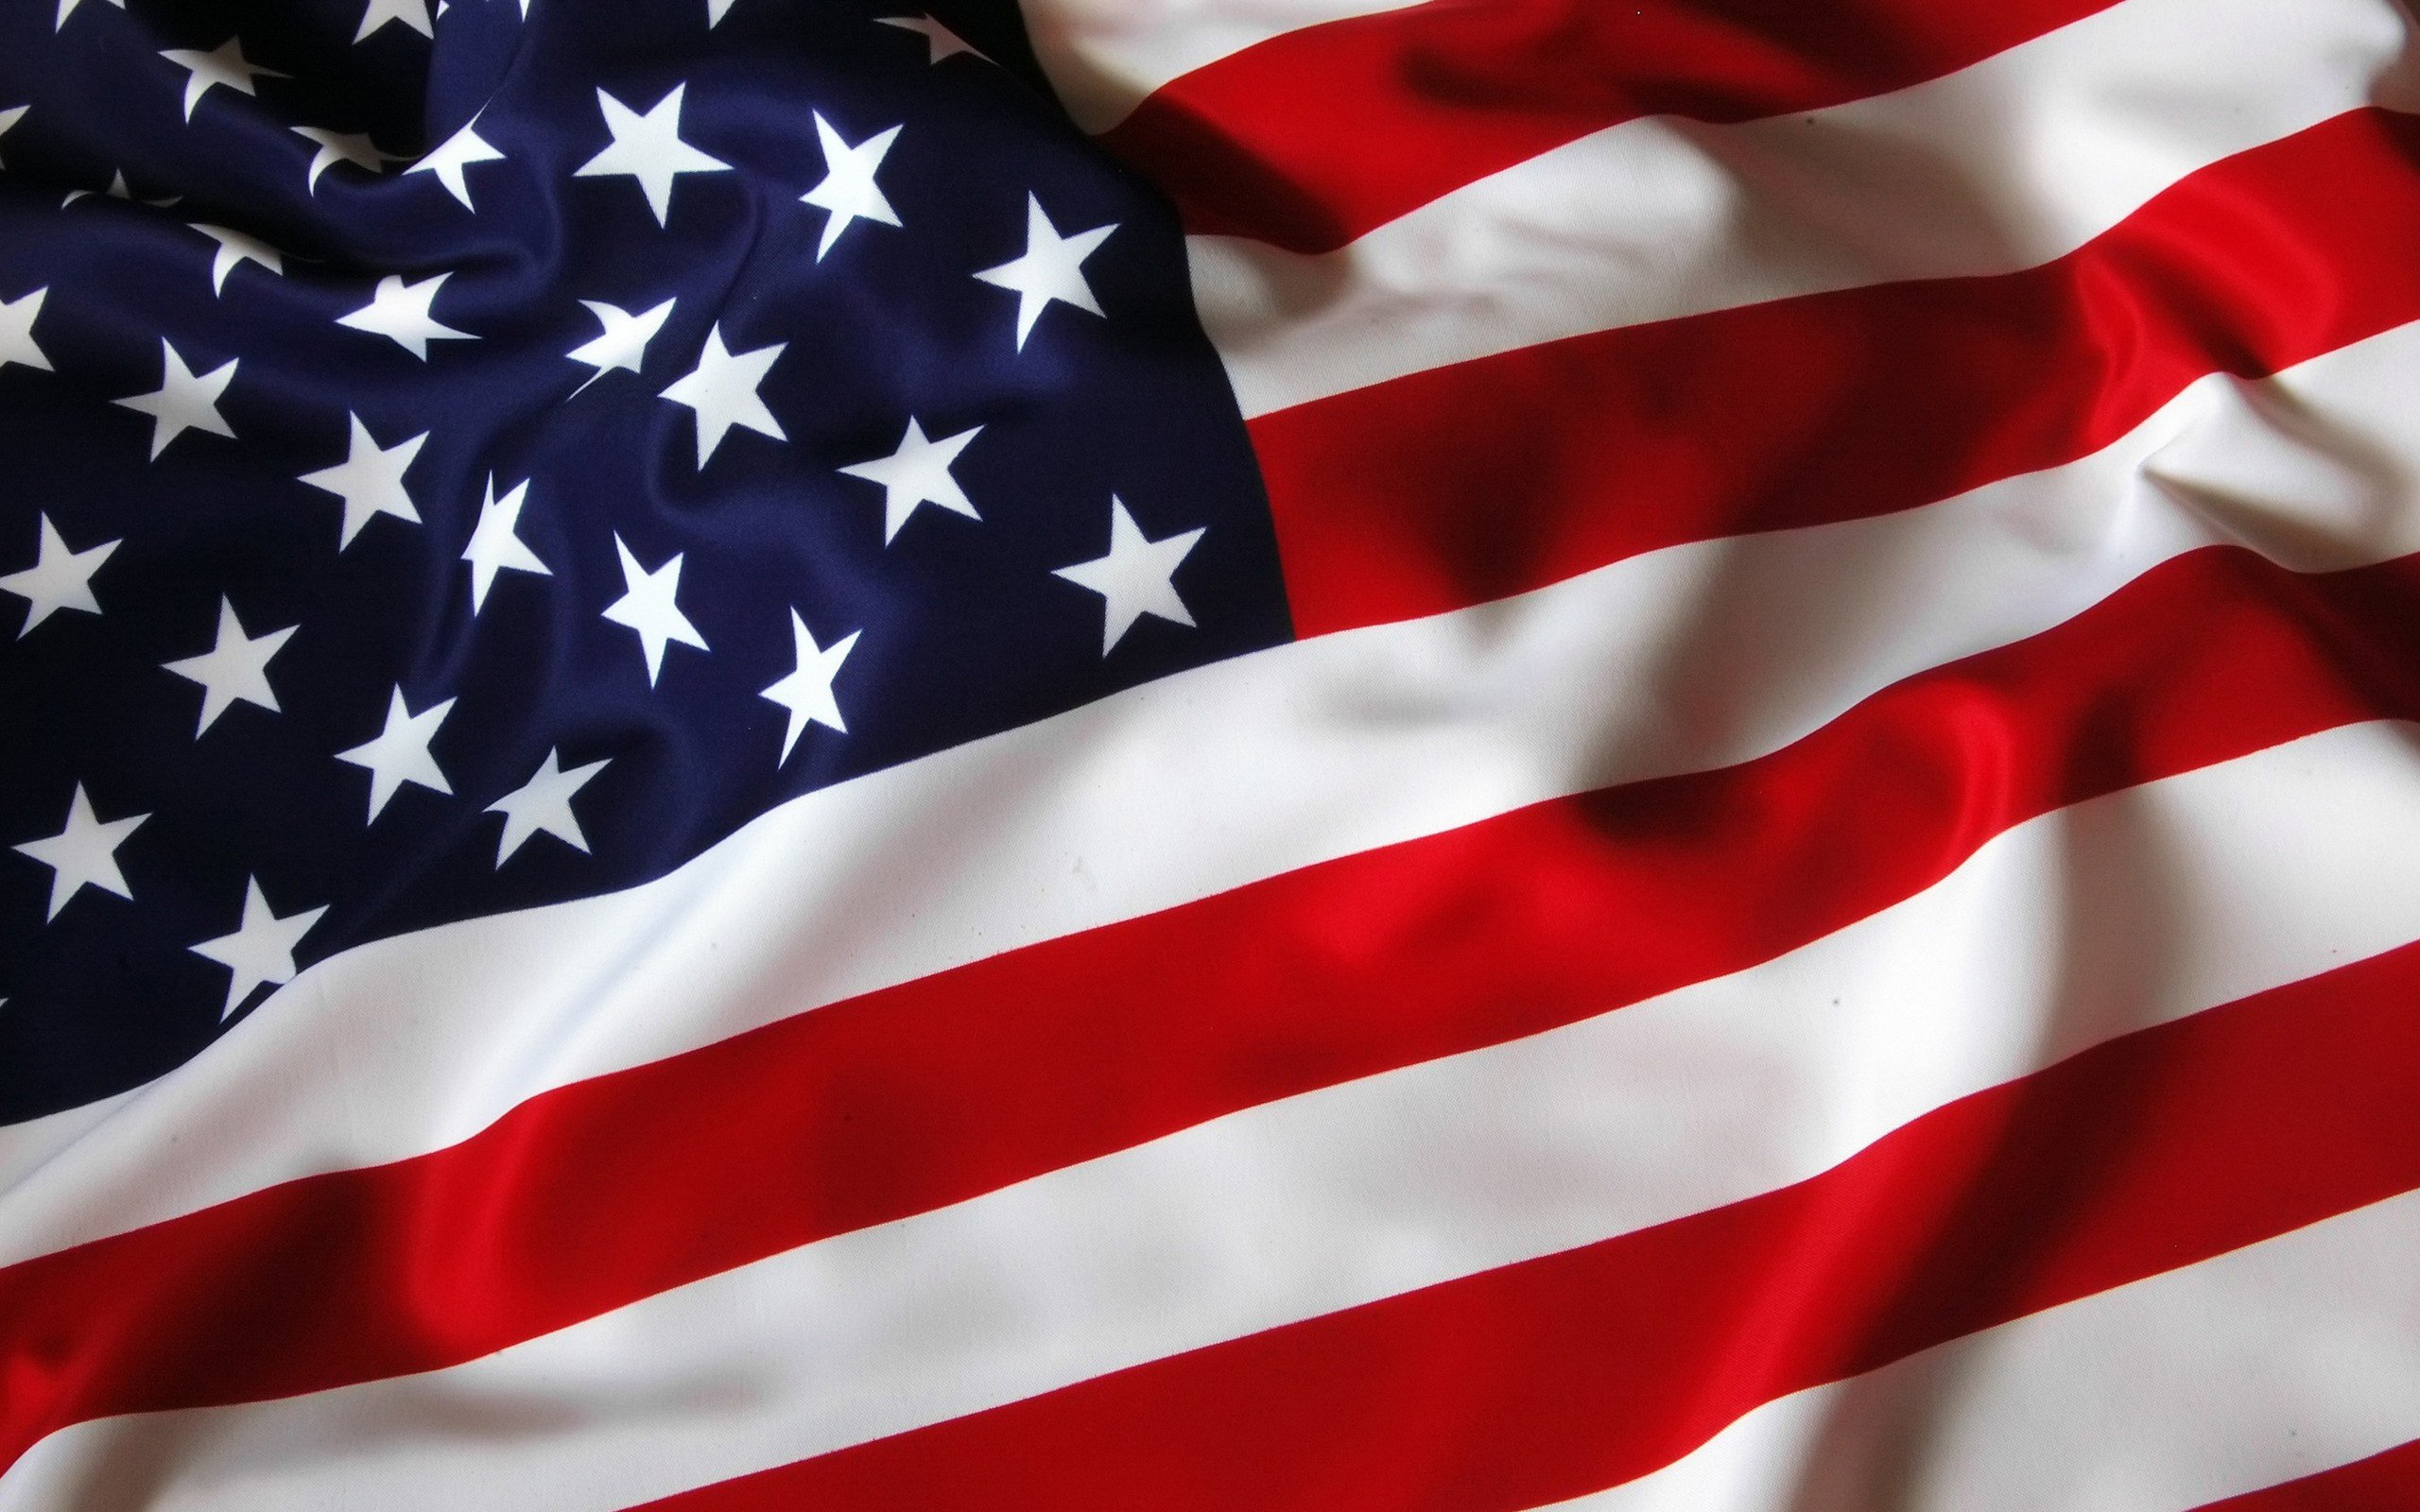 american flag beautiful images hd new wallpapers of us flag 2560x1600